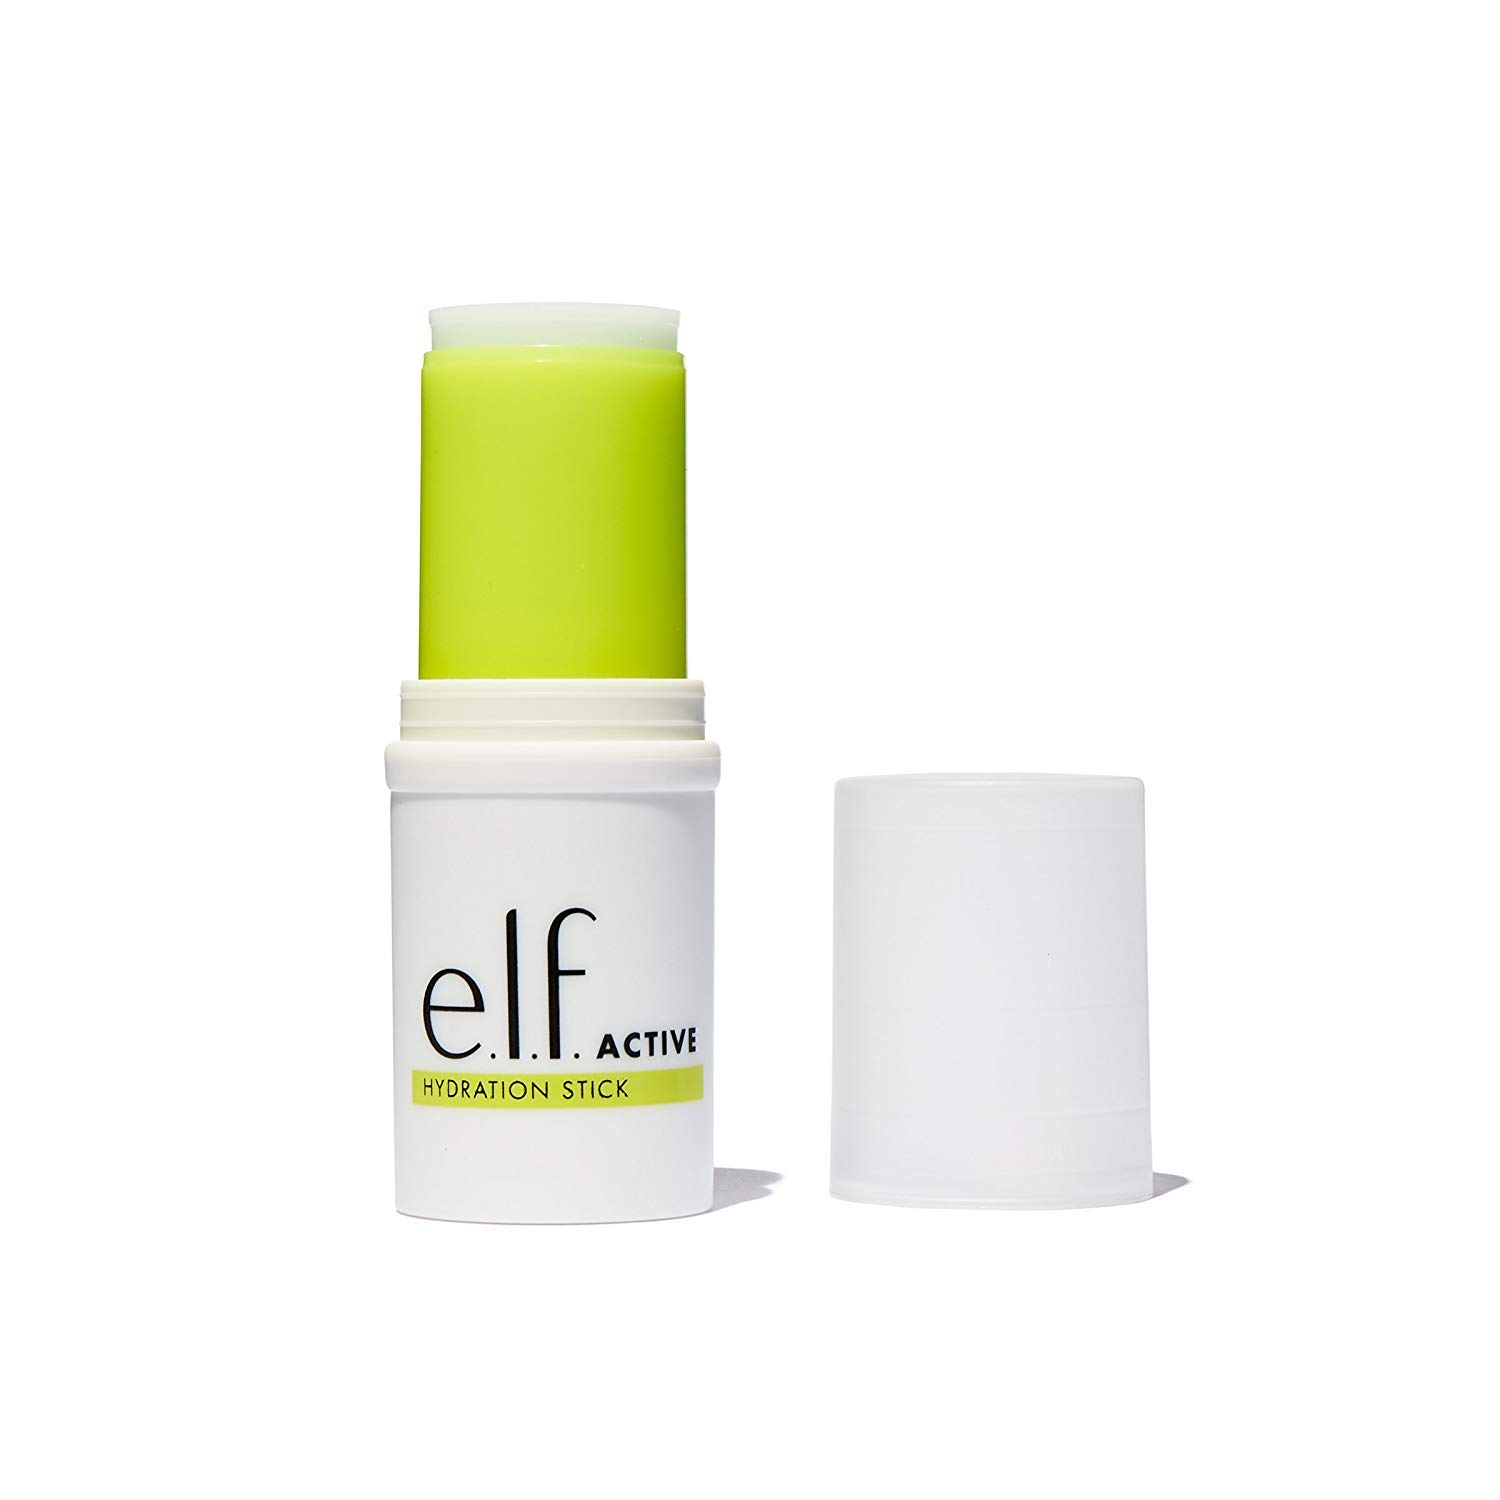 Elf Active Workout Ready Hydration Stick Pack depot Recommendation oz 0.53 15 g of